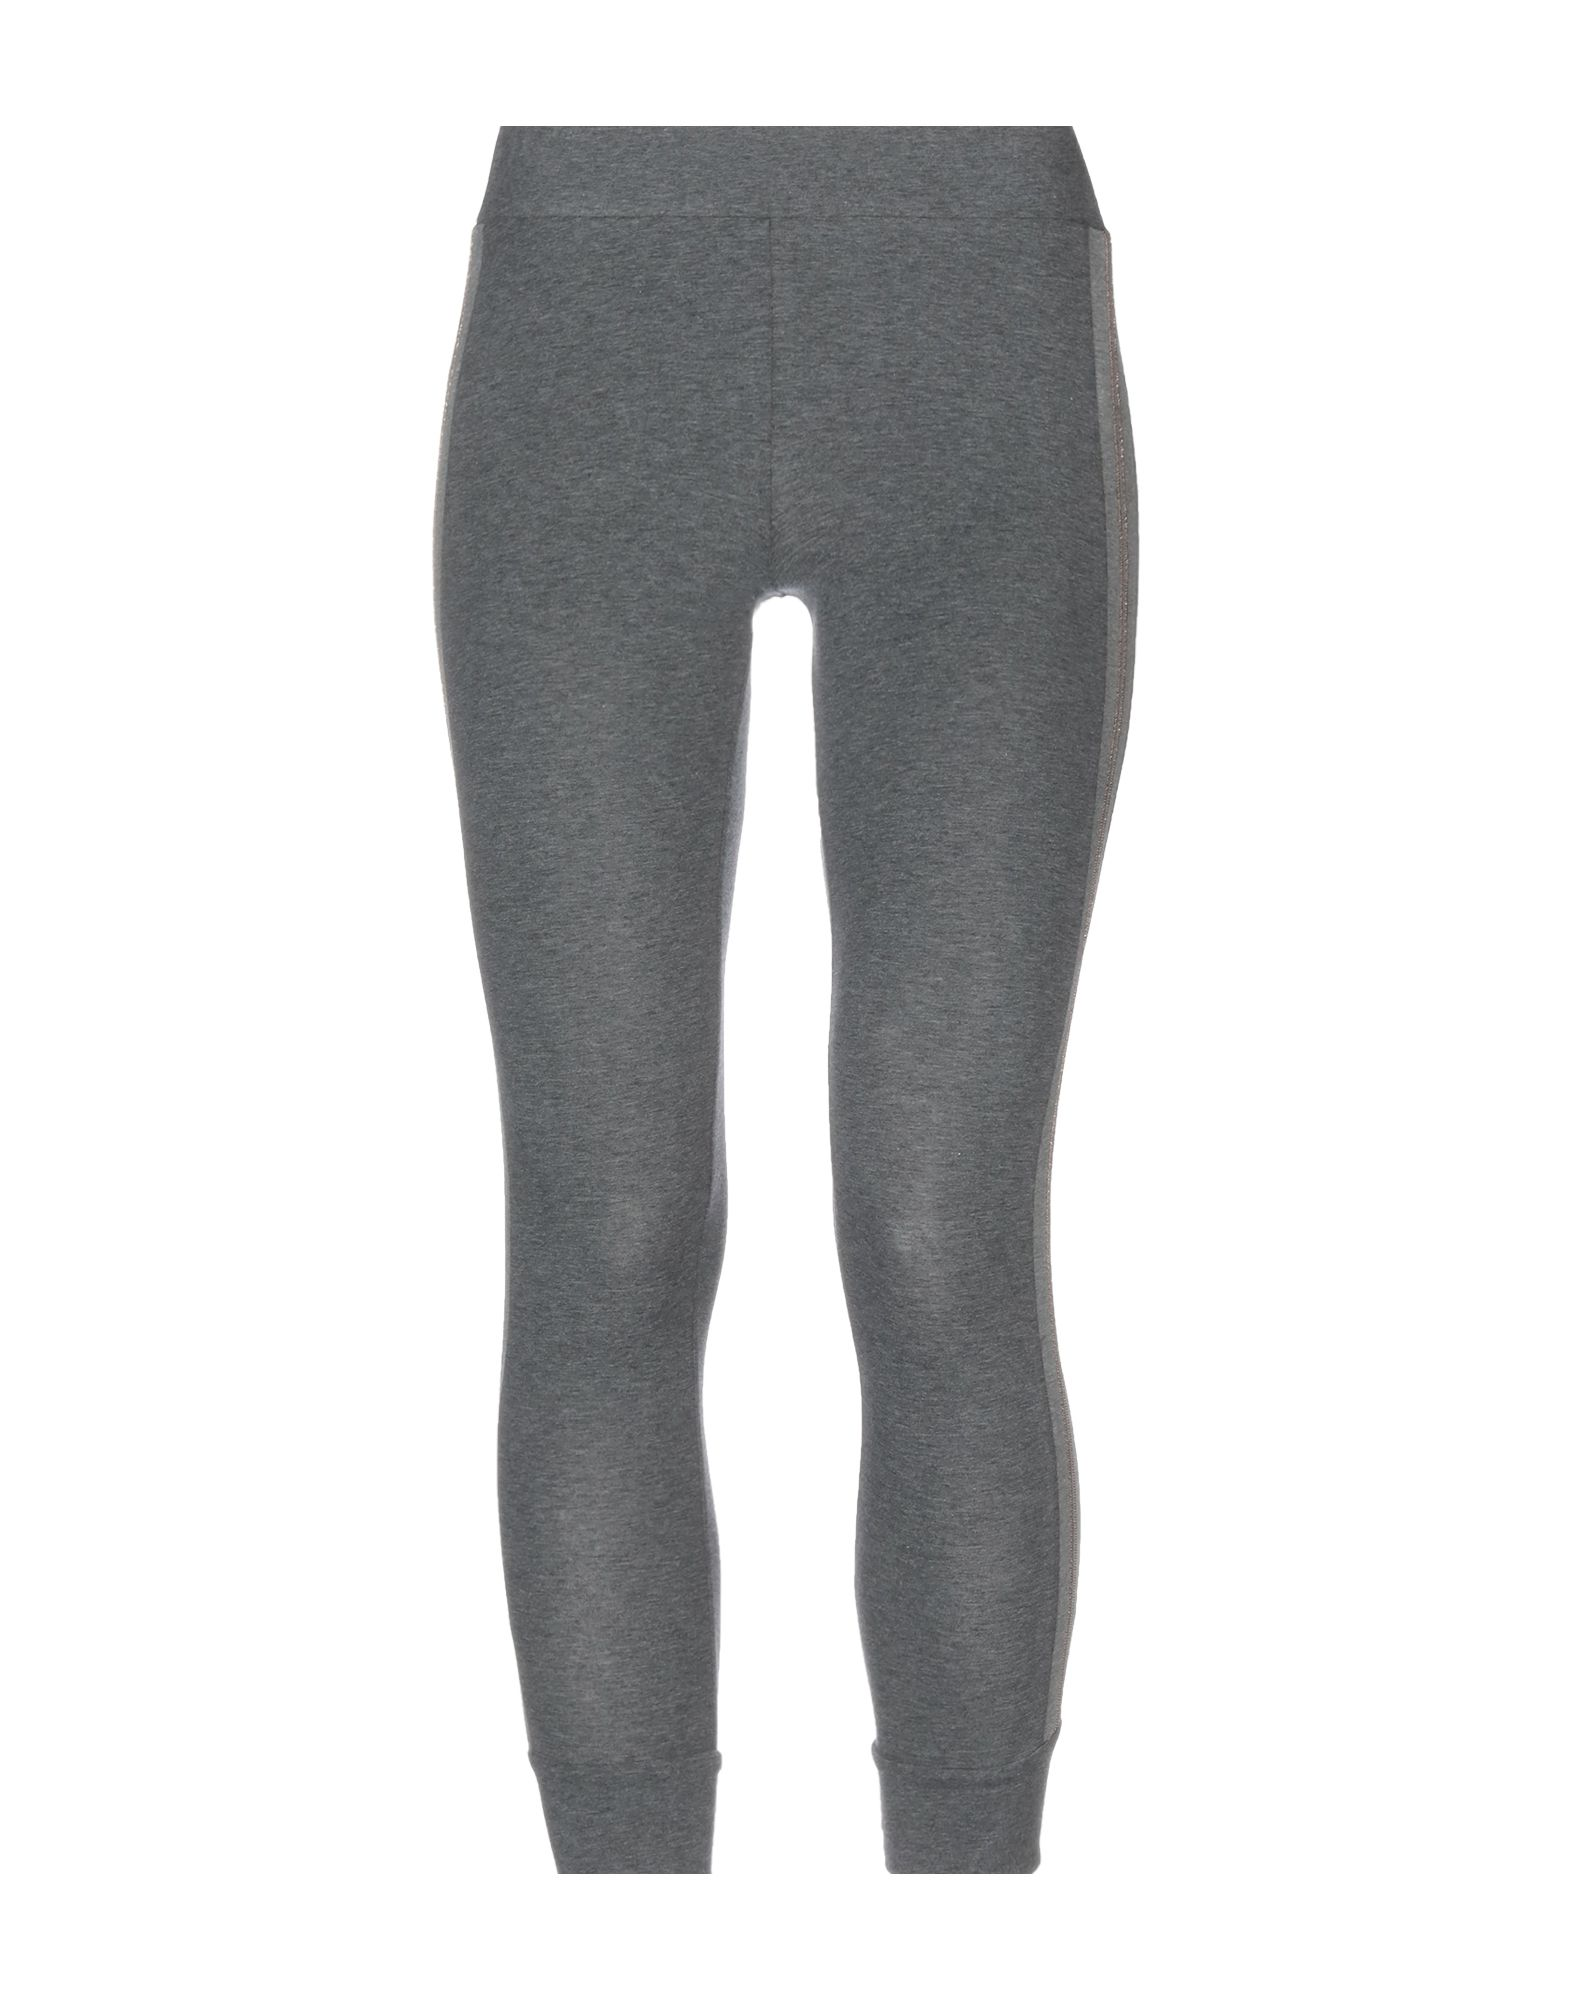 BRUNELLO CUCINELLI Leggings. jersey, metal applications, side seam stripes, solid color, mid rise, slim fit, tapered leg, elasticized waist, no pockets, stretch, pants. 93% Cotton, 7% Elastane, Ecobrass